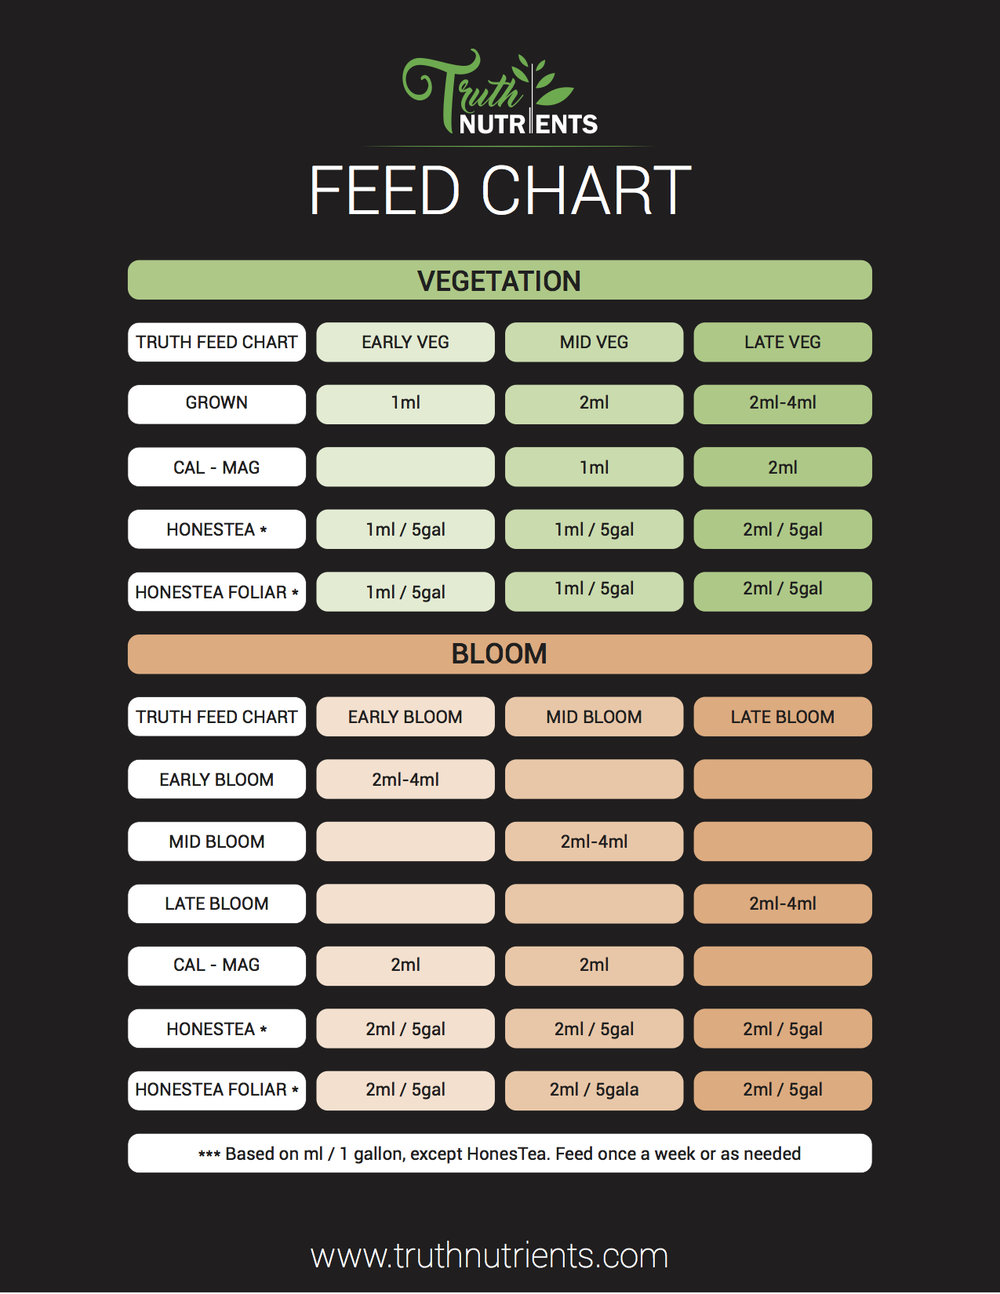 TRUTH Feed Chart